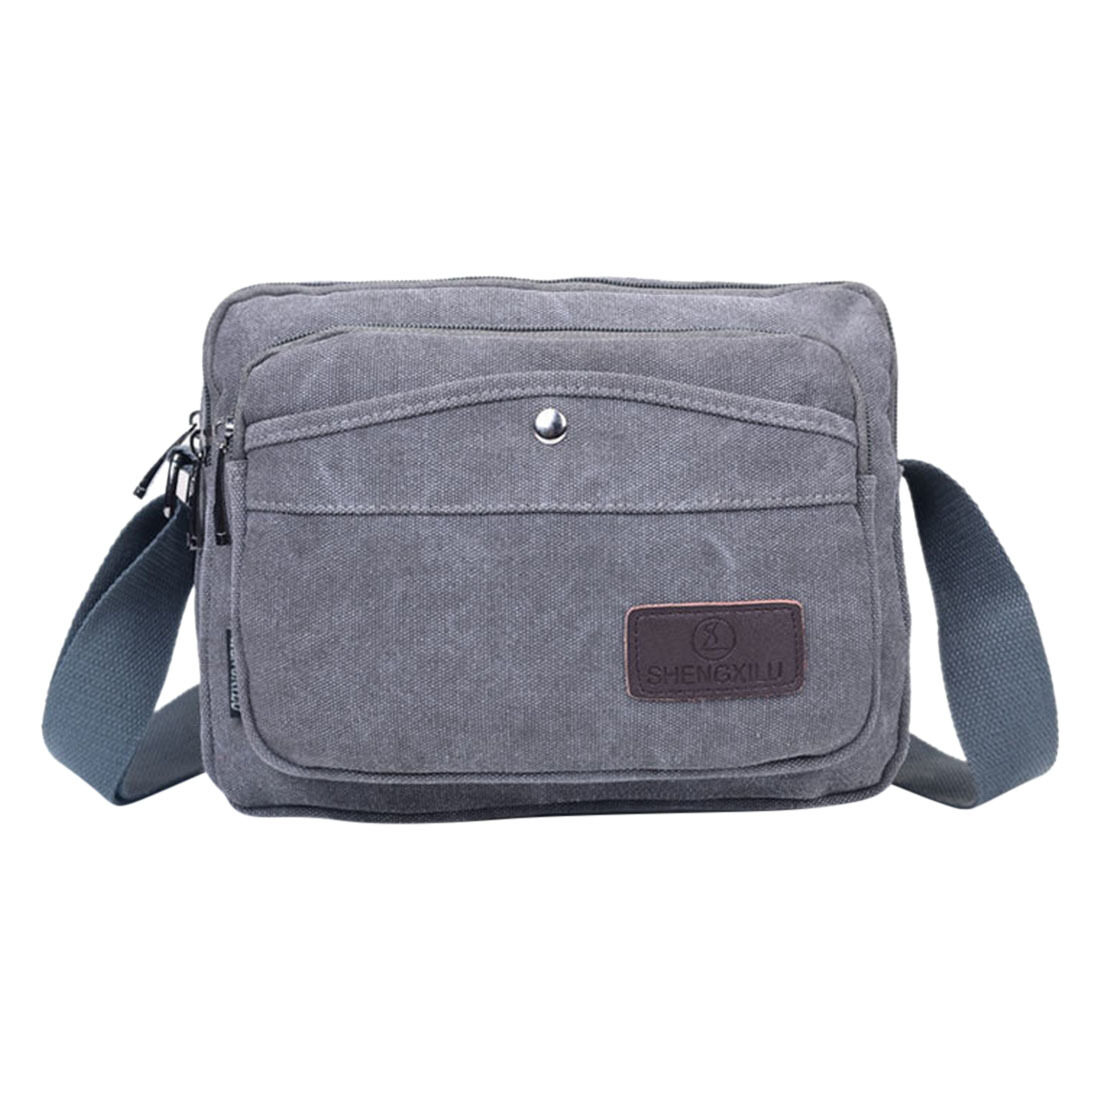 Men's Messenger Bags for the Best Prices in Malaysia